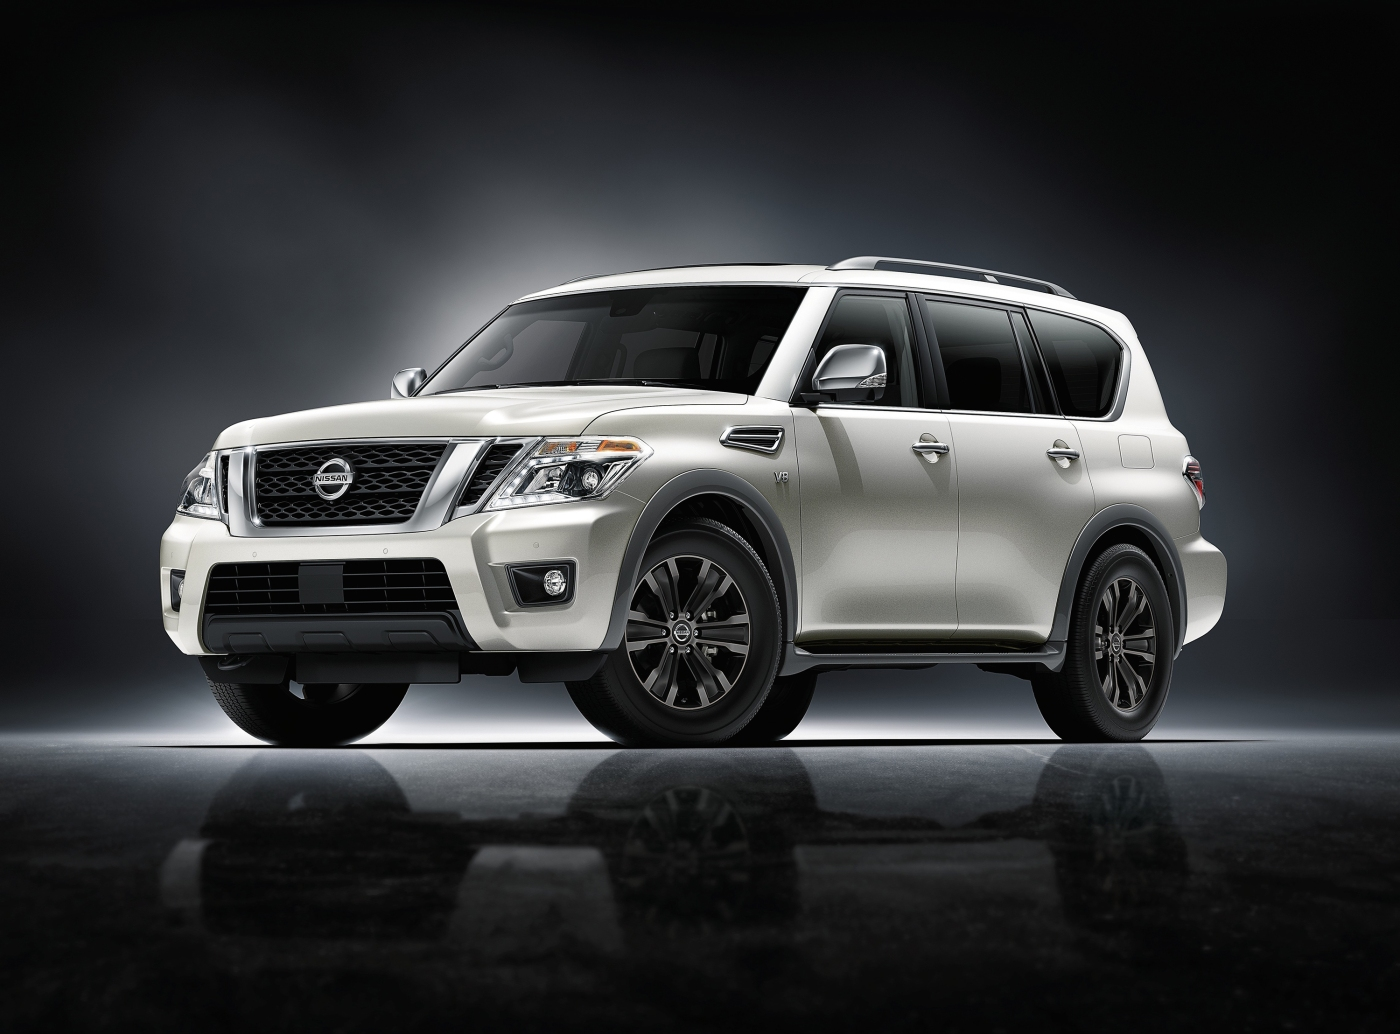 2017 nissan armada a driveways review the review garage. Black Bedroom Furniture Sets. Home Design Ideas